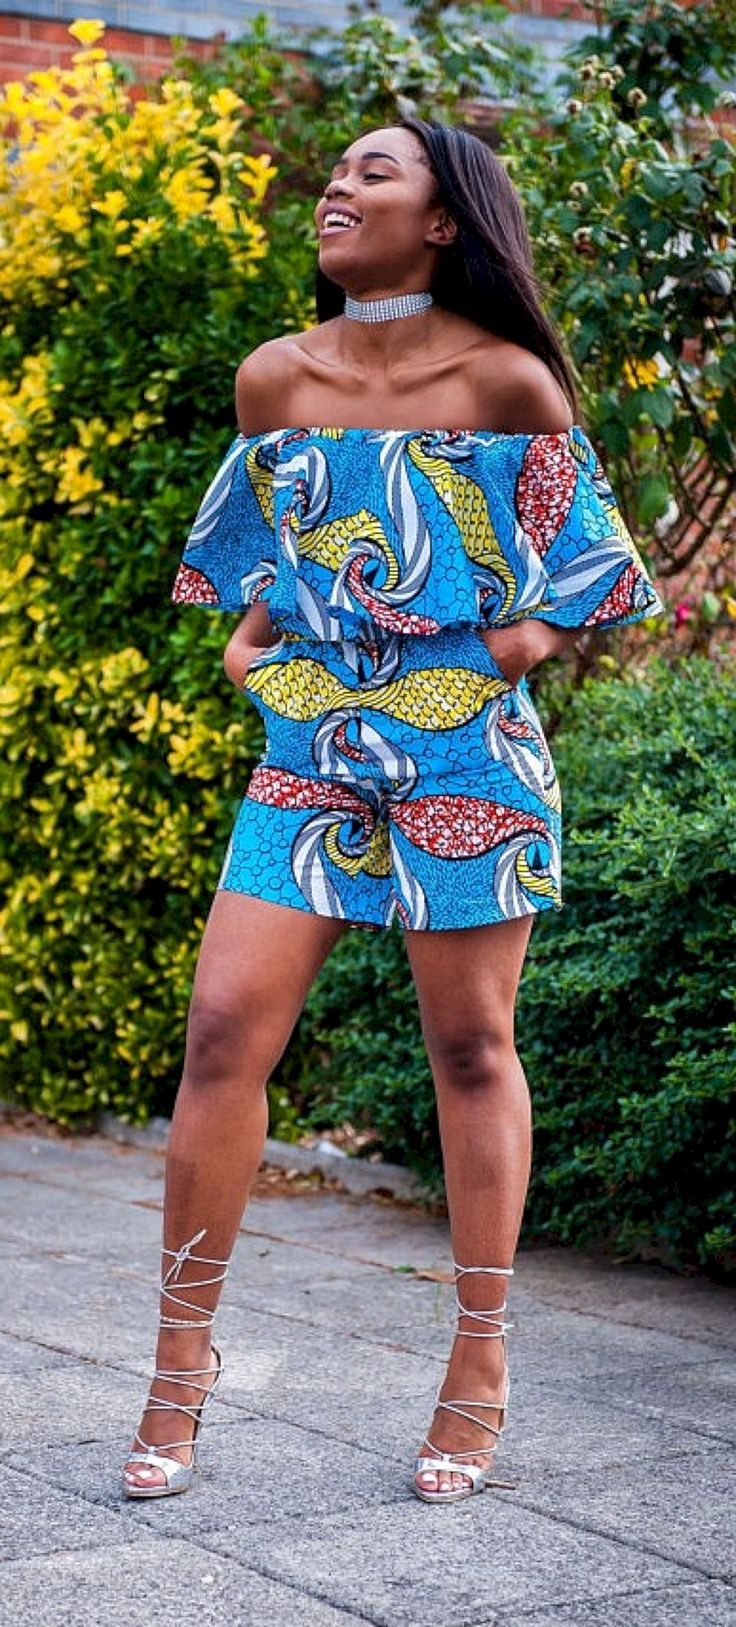 Amazing 50 Best Women's African Fashion Style Outfits You Need To Try This Summer https://www.tukuoke.com/50-best-womens-african-fashion-style-outfits-you-need-to-try-this-summer-3551